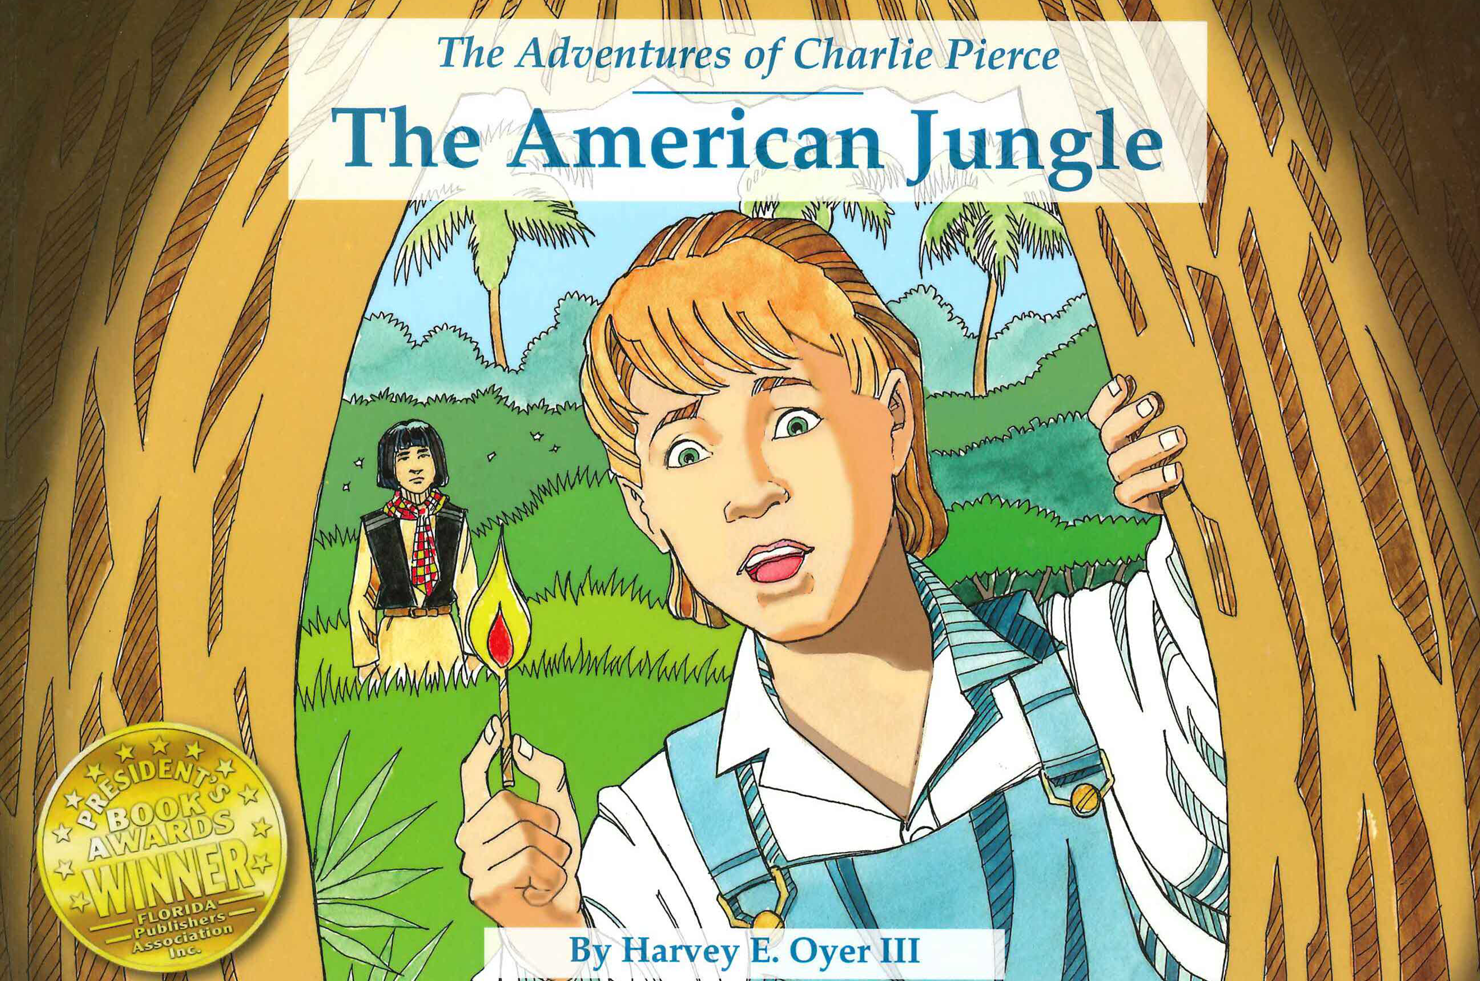 The American Jungle